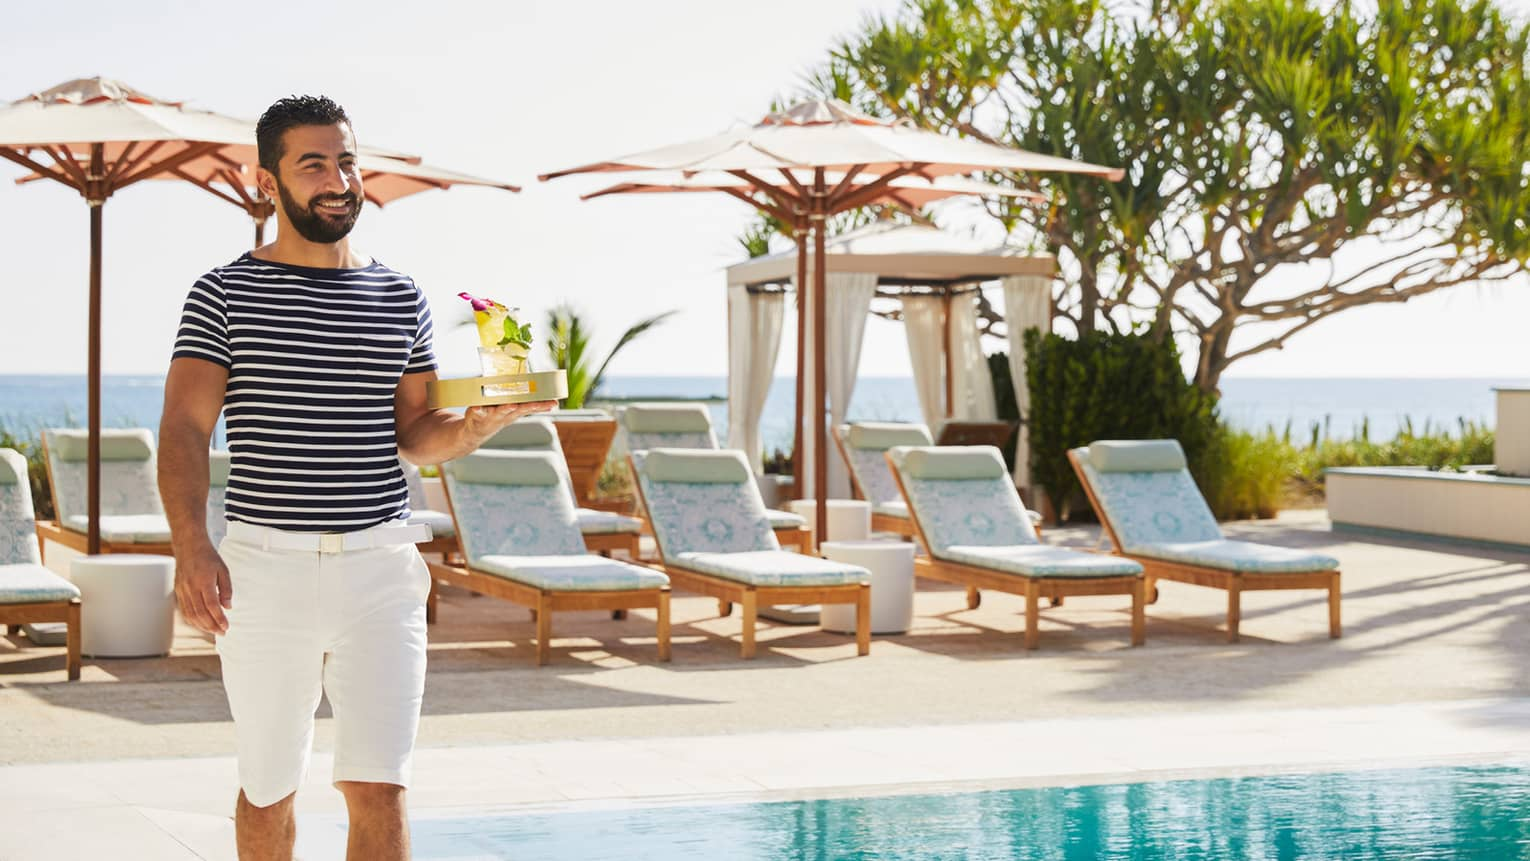 Staff member in blue striped shirt, white bermuda shorts, carrying drink tray, outdoor poolside